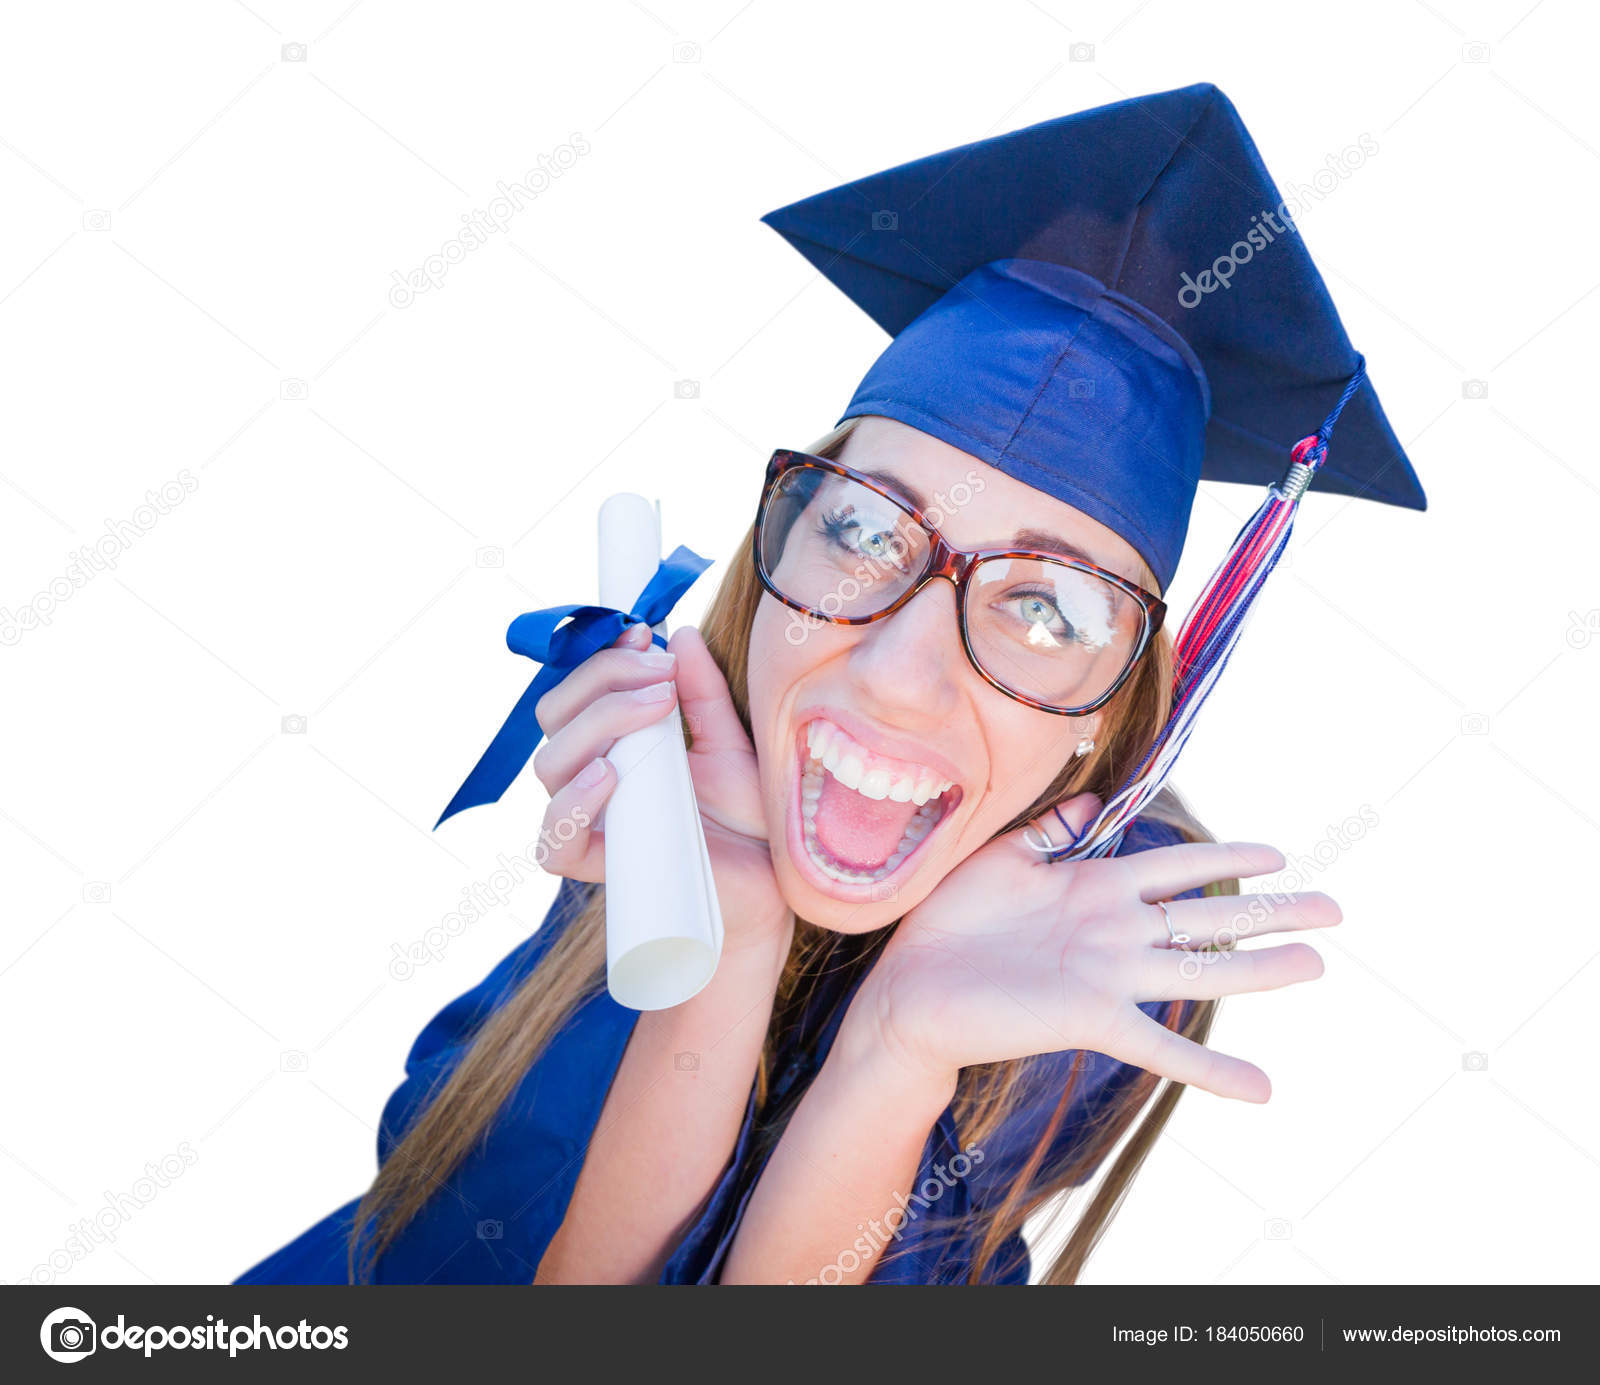 Goofy Graduating Young Girl In Cap and Gown Isolated on a White Background.  — Stock Photo © Feverpitch #184050660